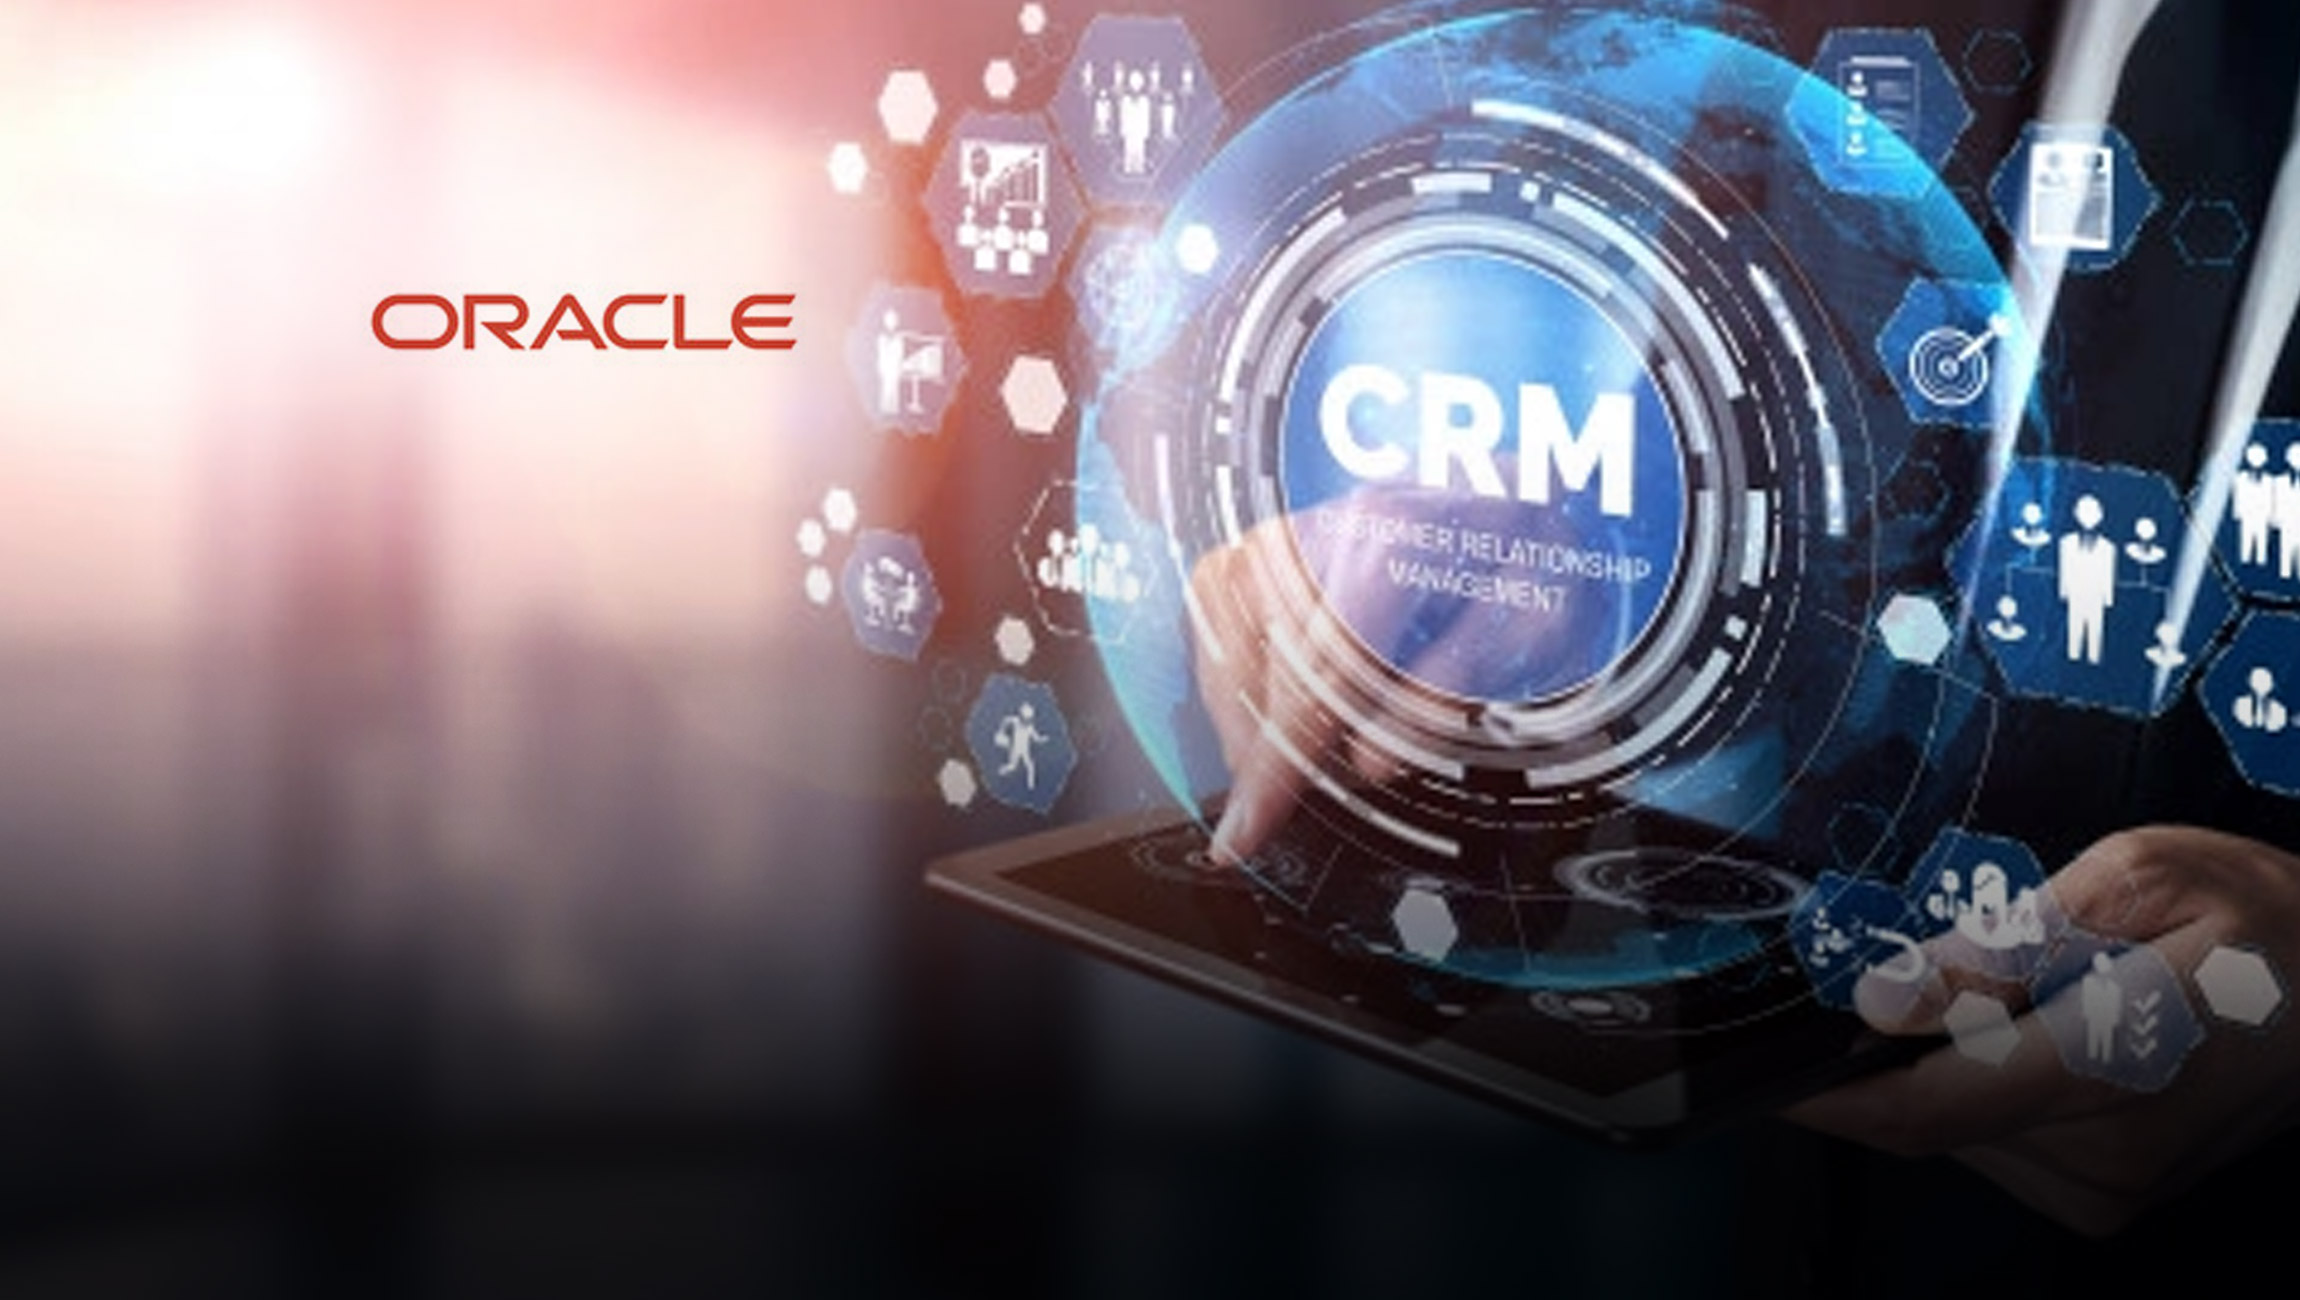 New Study: 66% of Sellers Would Rather Clean the Bathroom Than Update Their CRM System